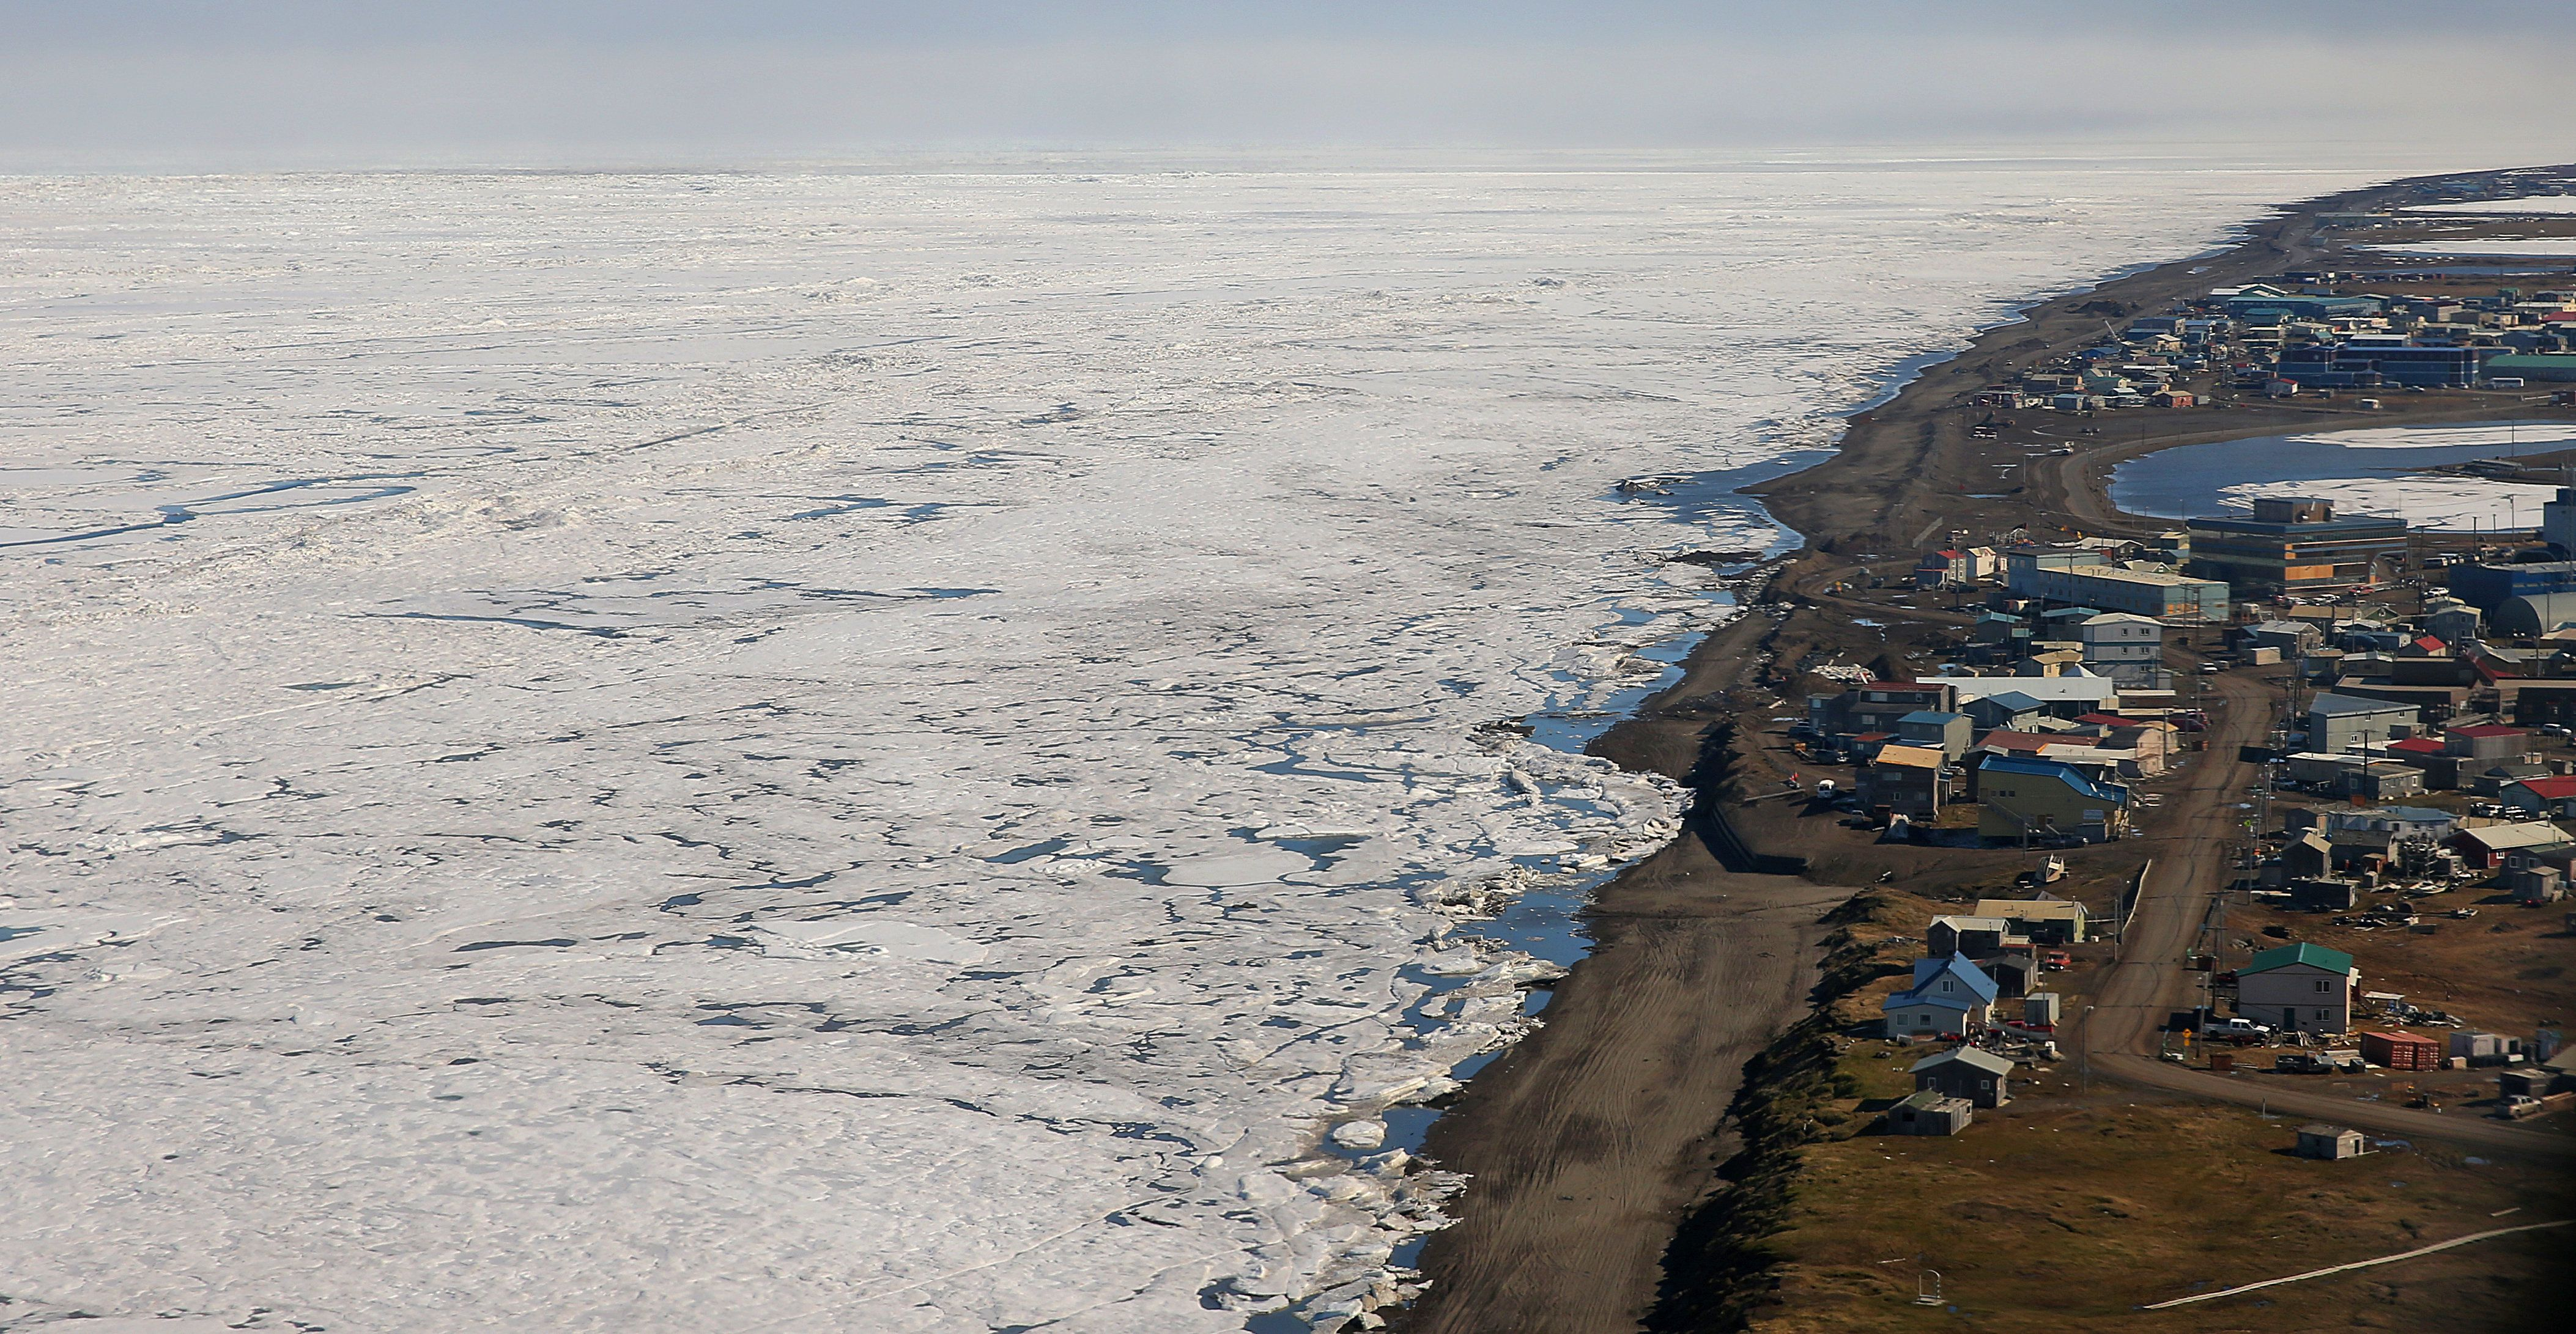 BARROW, AK - JUNE 12: An aerial view of the arctic ice from above Barrow, Alaska. Officials have sought to protect Barrow, which is fewer than 15 feet above sea level, by moving municipal buildings and lining the coast with berms and sandbags. (Photo by David L. Ryan/The Boston Globe via Getty Images)